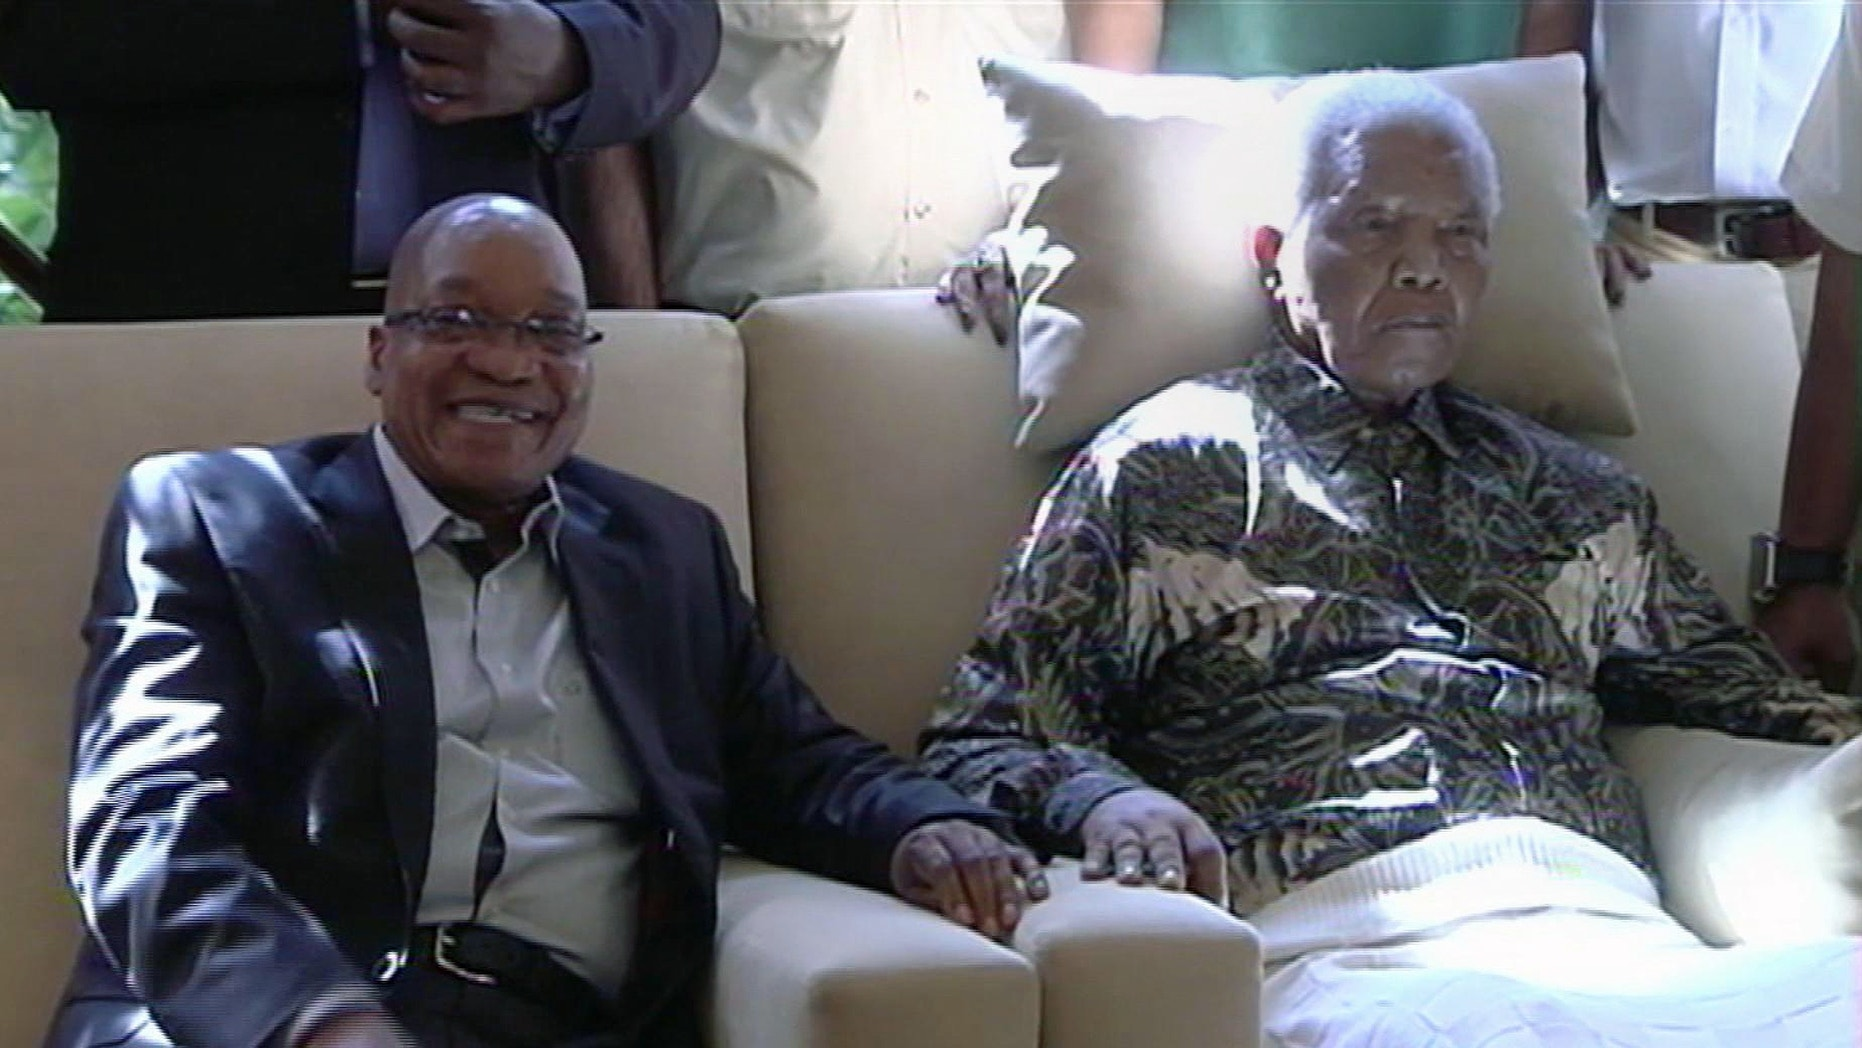 April 29, 2013 - In this image taken from video, South African President Jacob Zuma, left, sits with the ailing anti-apartheid icon Nelson Mandela.